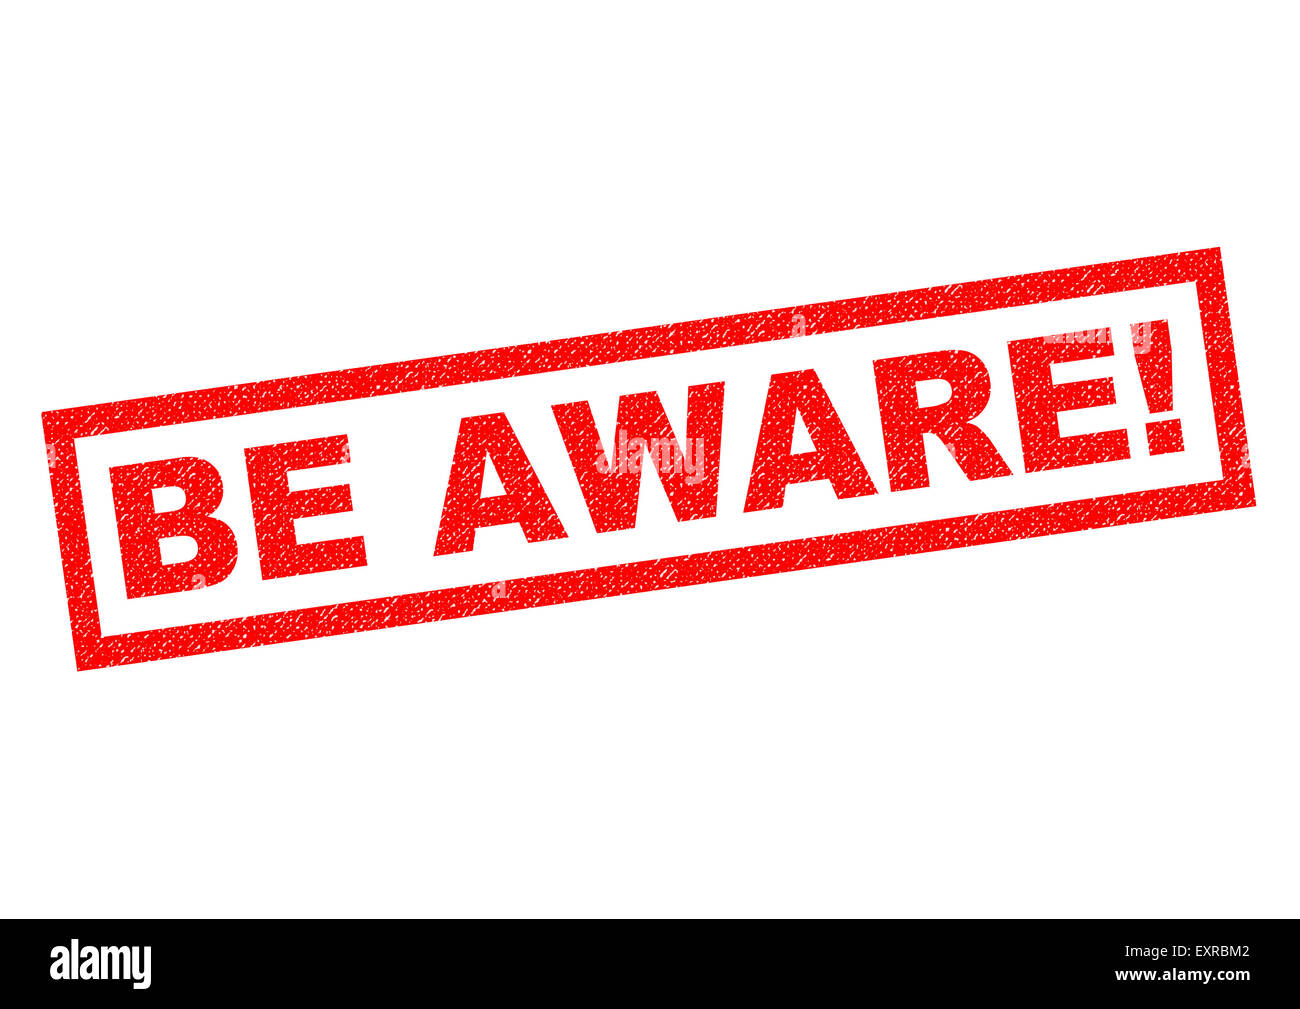 Be Aware! Red Rubber Stamp Over A White Background Stock. Keeper Password Manager Review. United State Liability Insurance Company. Best Marketing Software Era Franchise Systems. Learning Management System Websites. Culinary Schools In North Carolina. Pool Supplies Allentown Pa Labor Law Florida. Advertising Free Online Locksmith Jersey City. Online Doctoral Degree Programs In Education